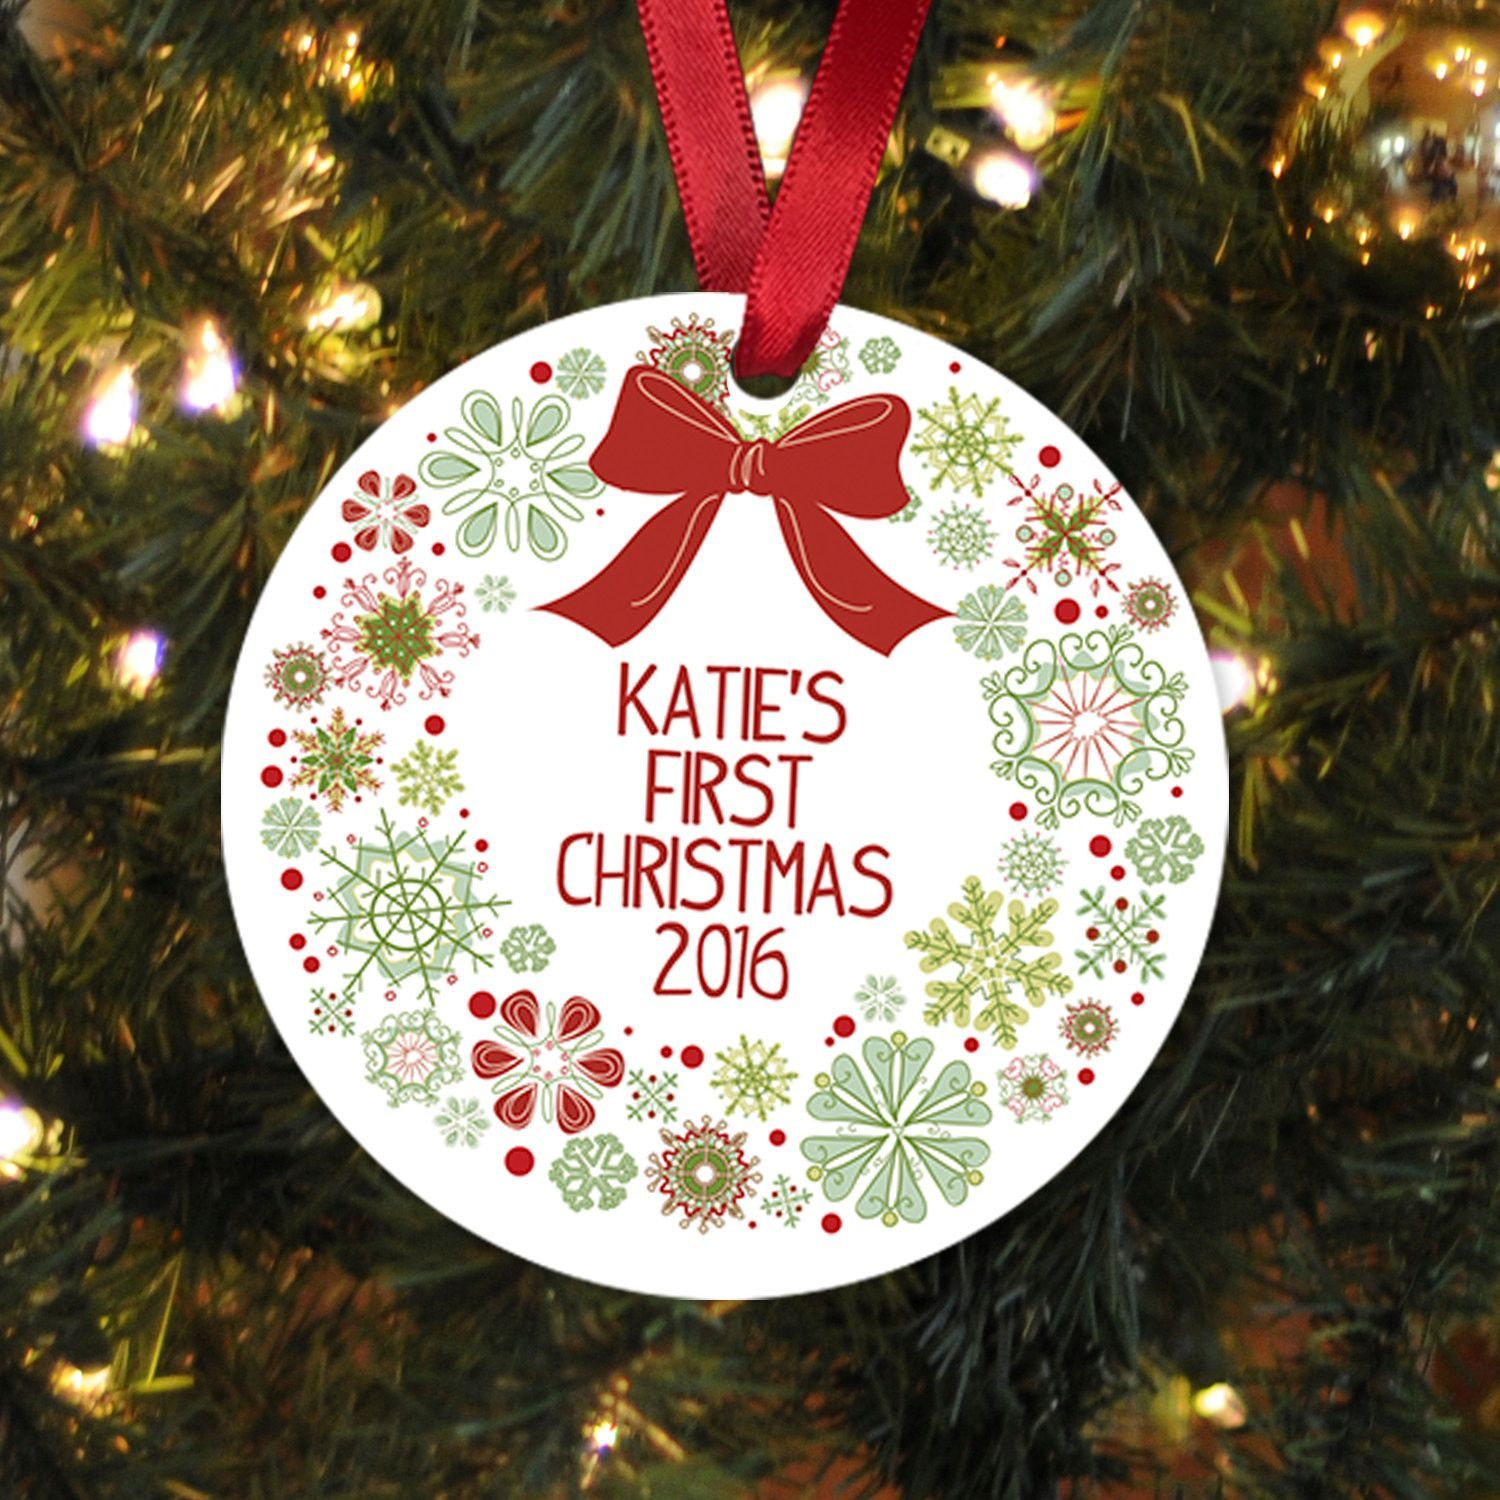 New baby christmas ornament - Baby S First Christmas Ornament Personalized Christmas Ornament Baby Christmas Ornament New Baby Gift